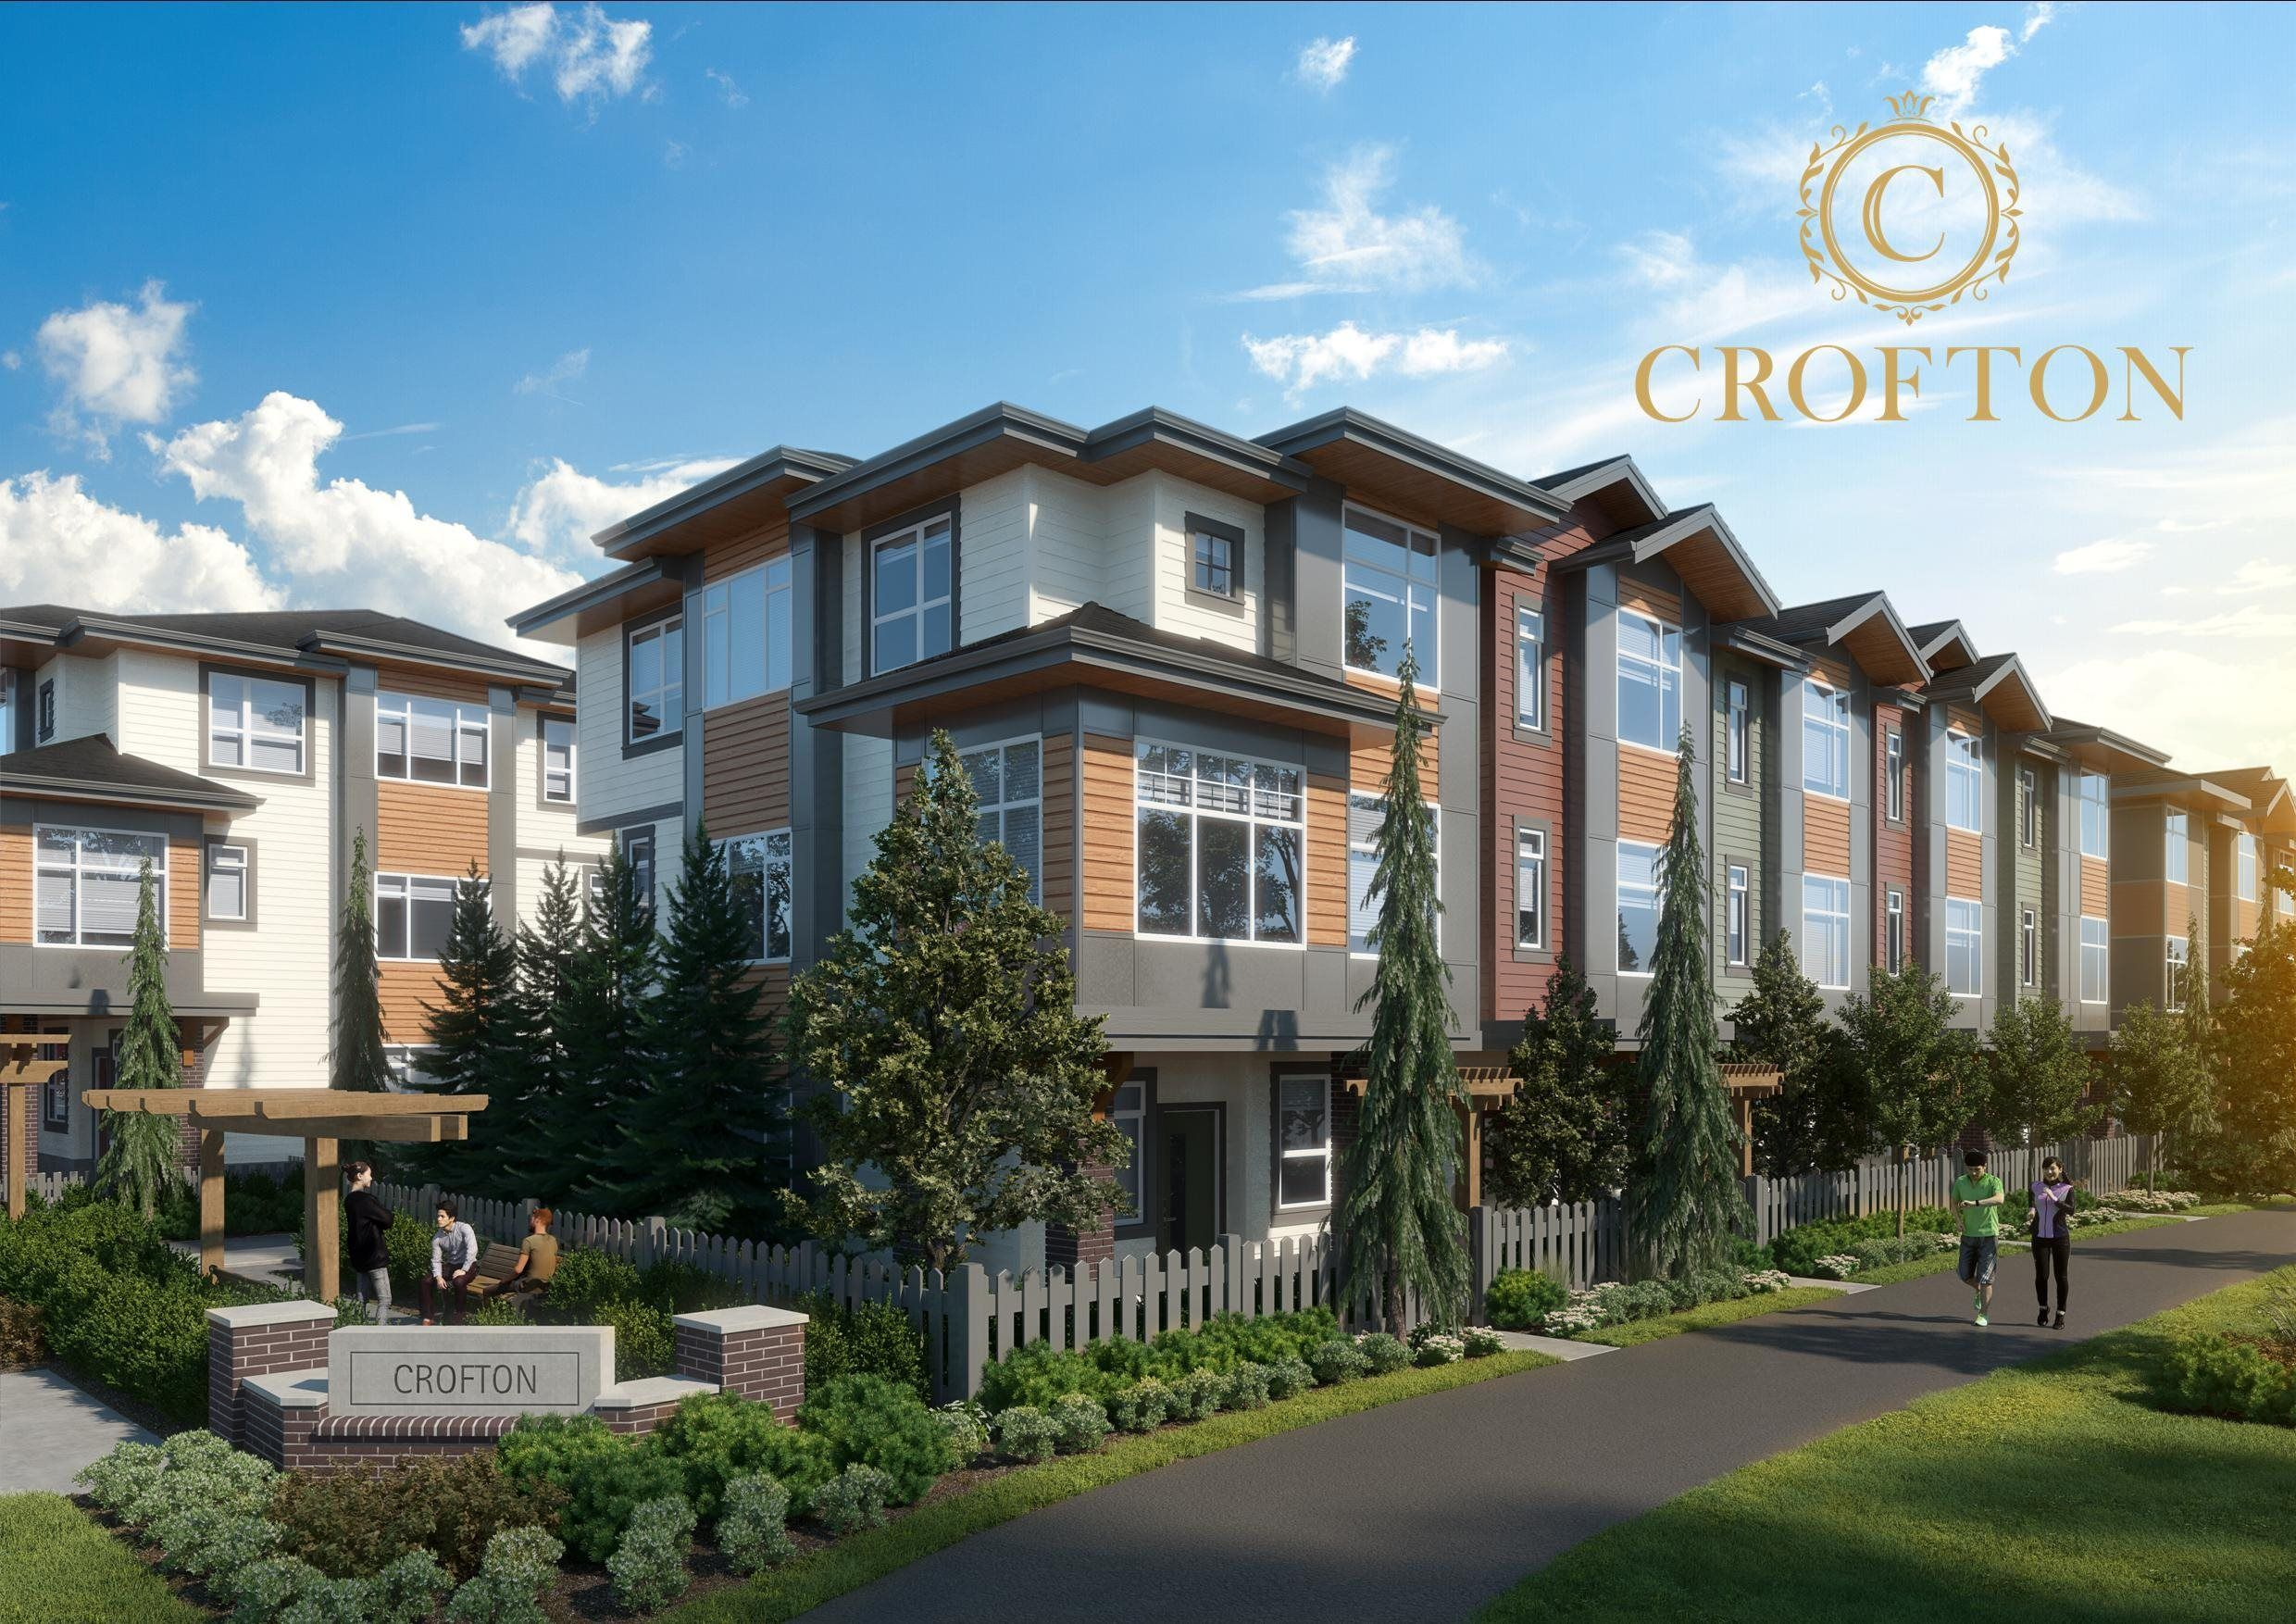 """Main Photo: 32 20763 76 Avenue in Langley: Willoughby Heights Townhouse for sale in """"CROFTON"""" : MLS®# R2613563"""